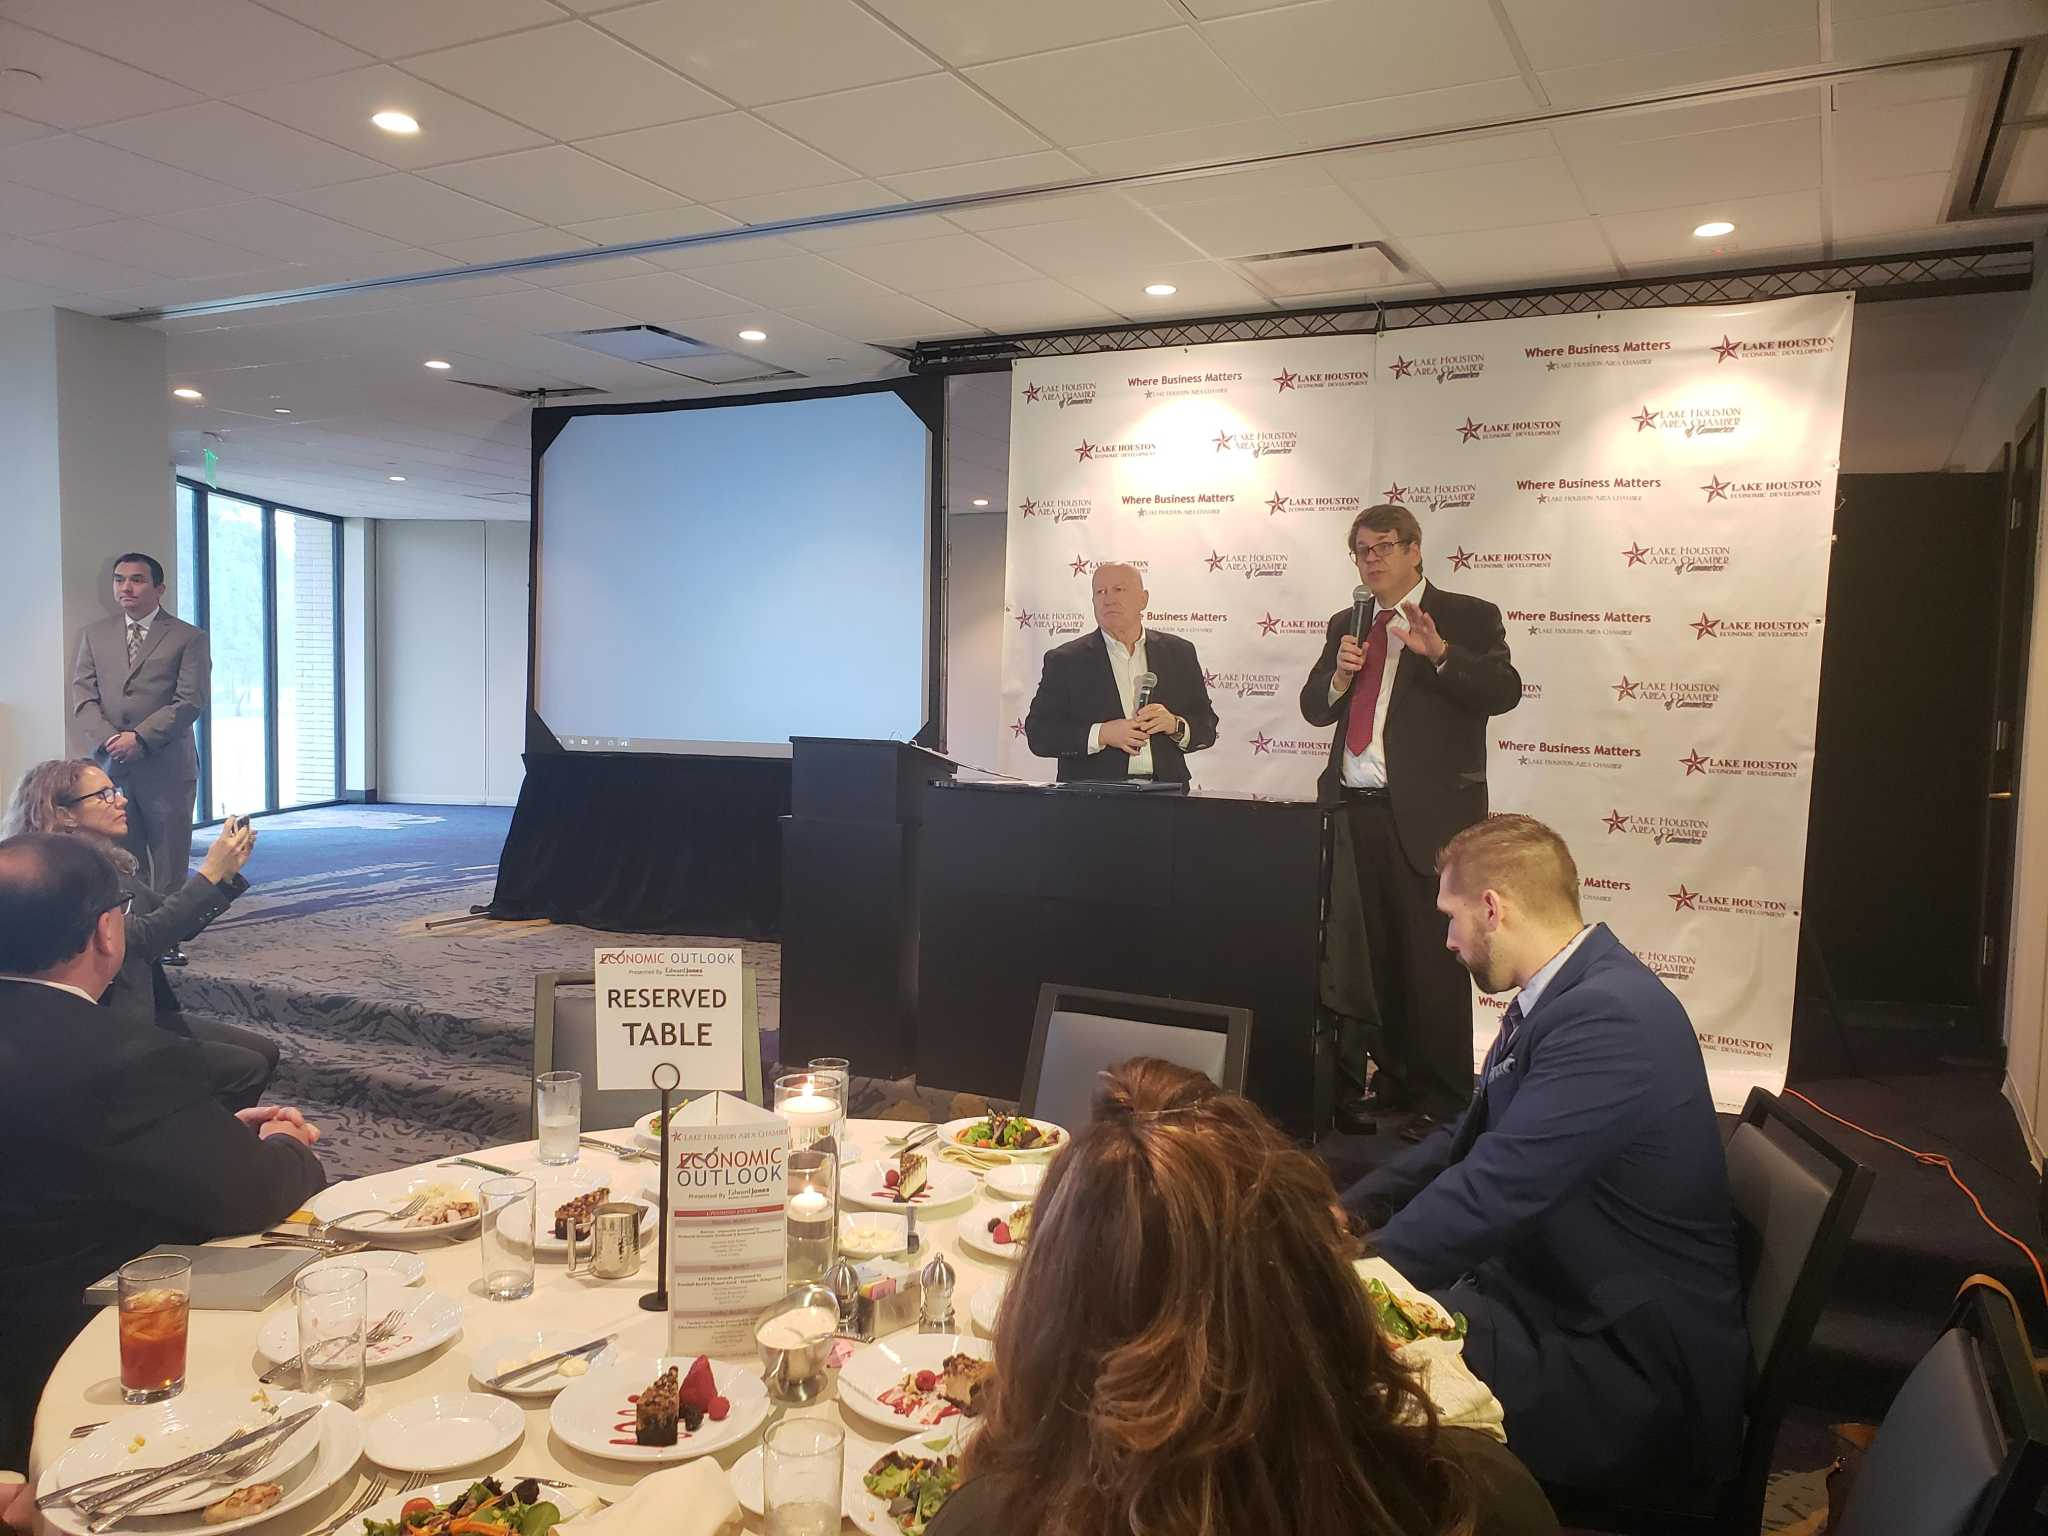 Lake Houston area business leaders told Houston's economy is in its 'best shape since 2014'